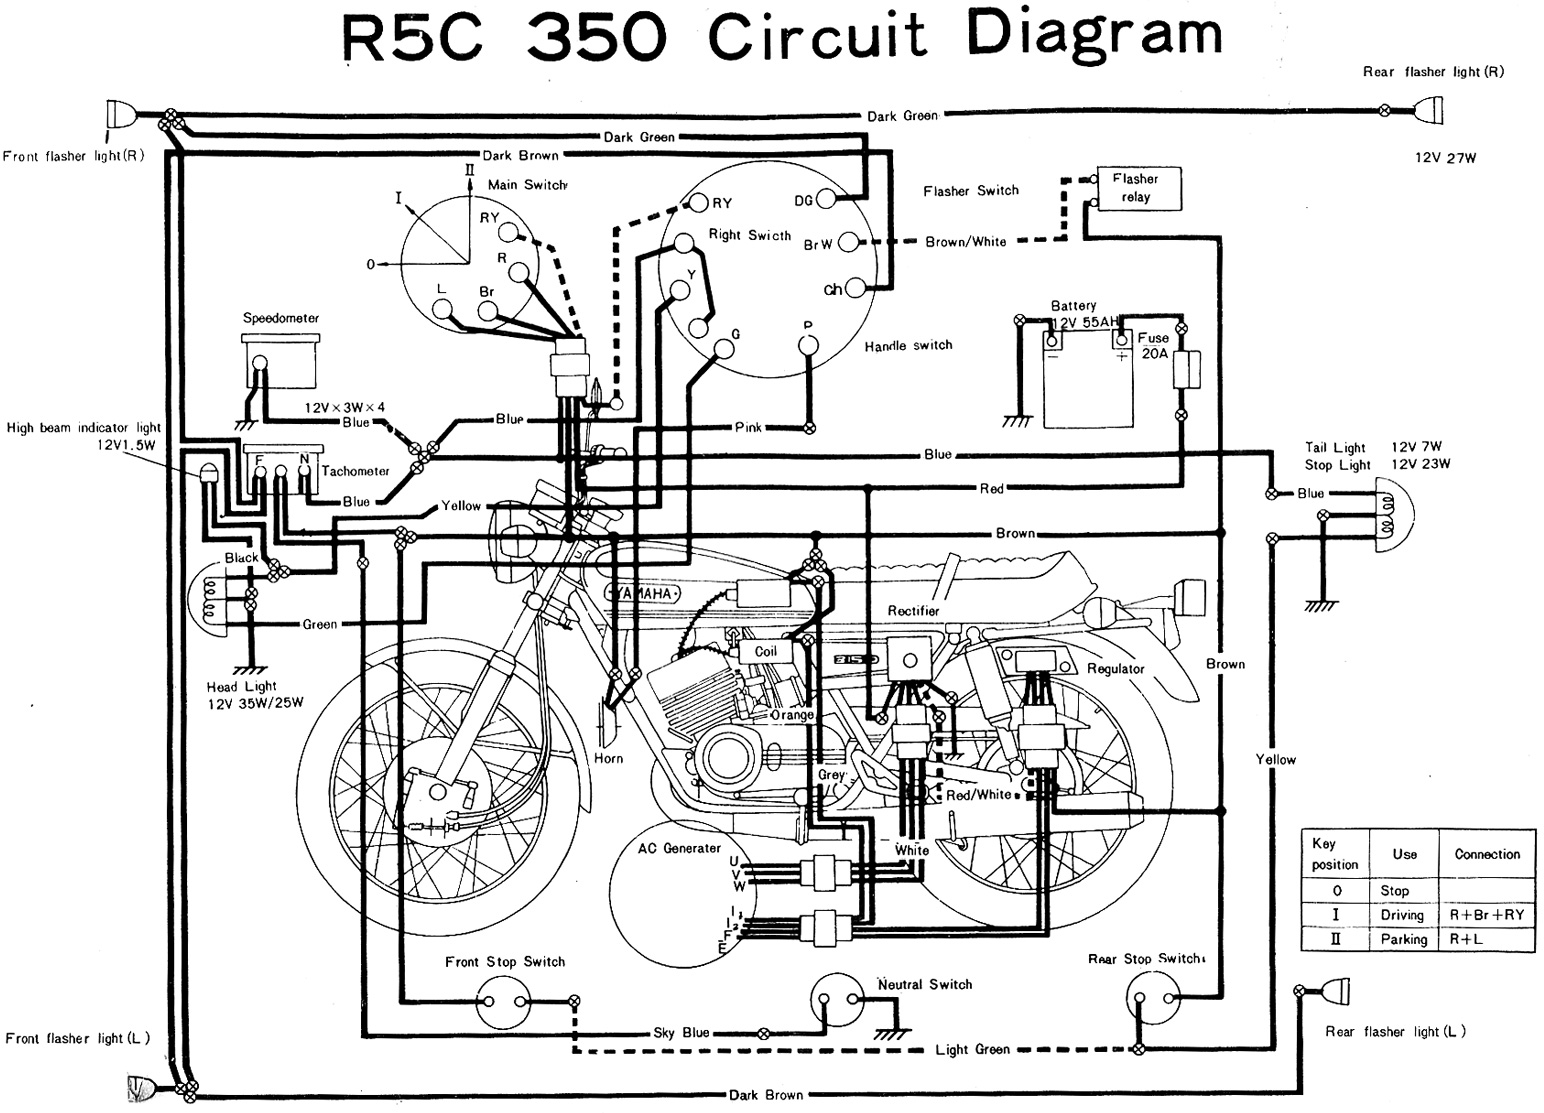 yardman 15 wiring diagram wiring diagrams and schematics mtd garden tractor wiring diagram diagrams and schematics